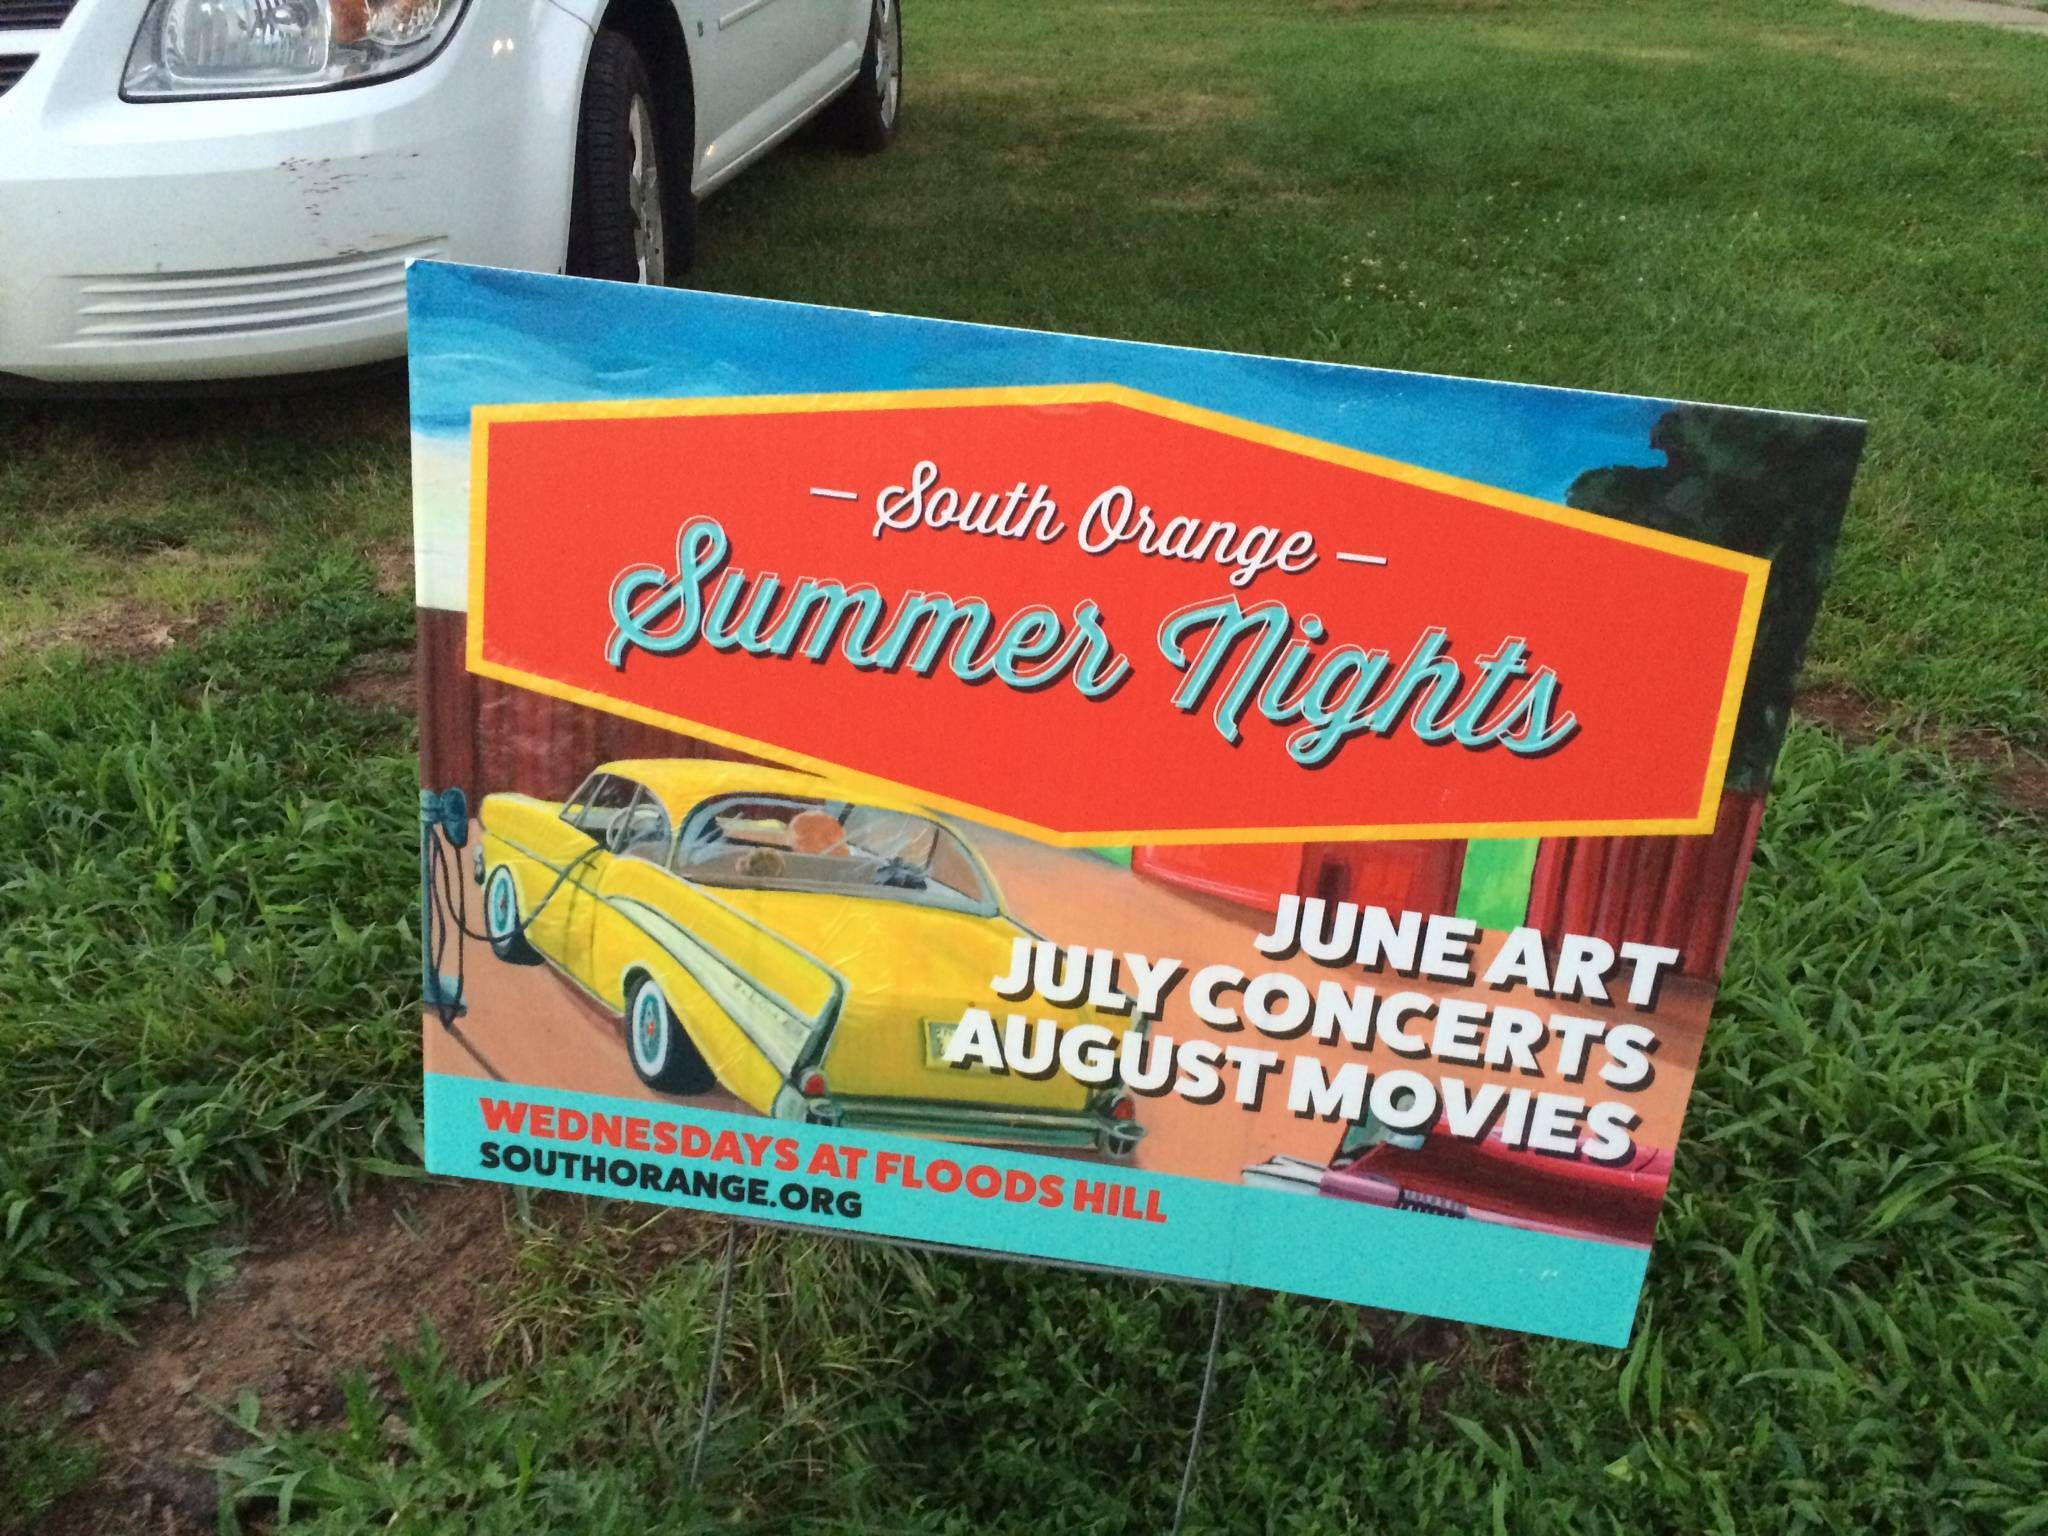 950470ac3301694d913e_summer_nights_sign.JPG